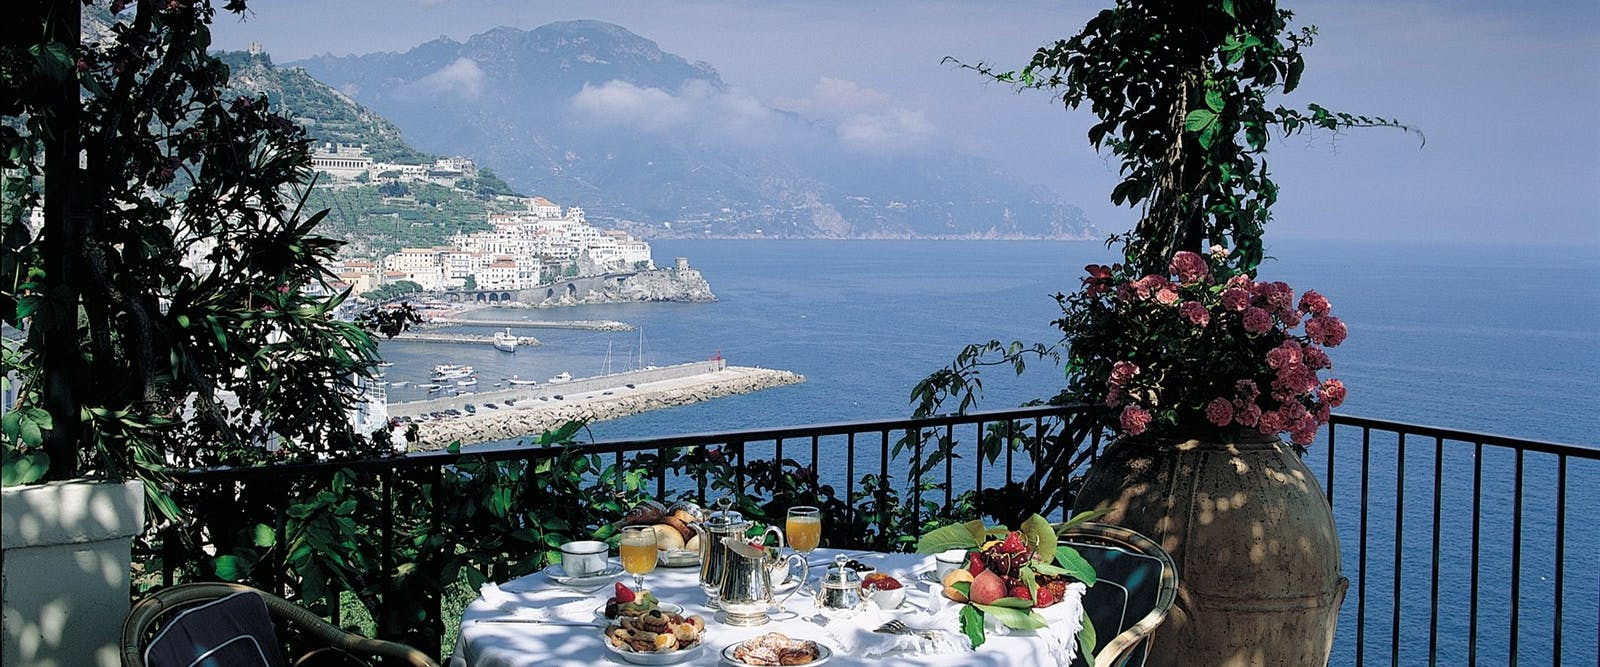 Restaurant at Hotel Santa Caterina, Amalfi Coast, Italy